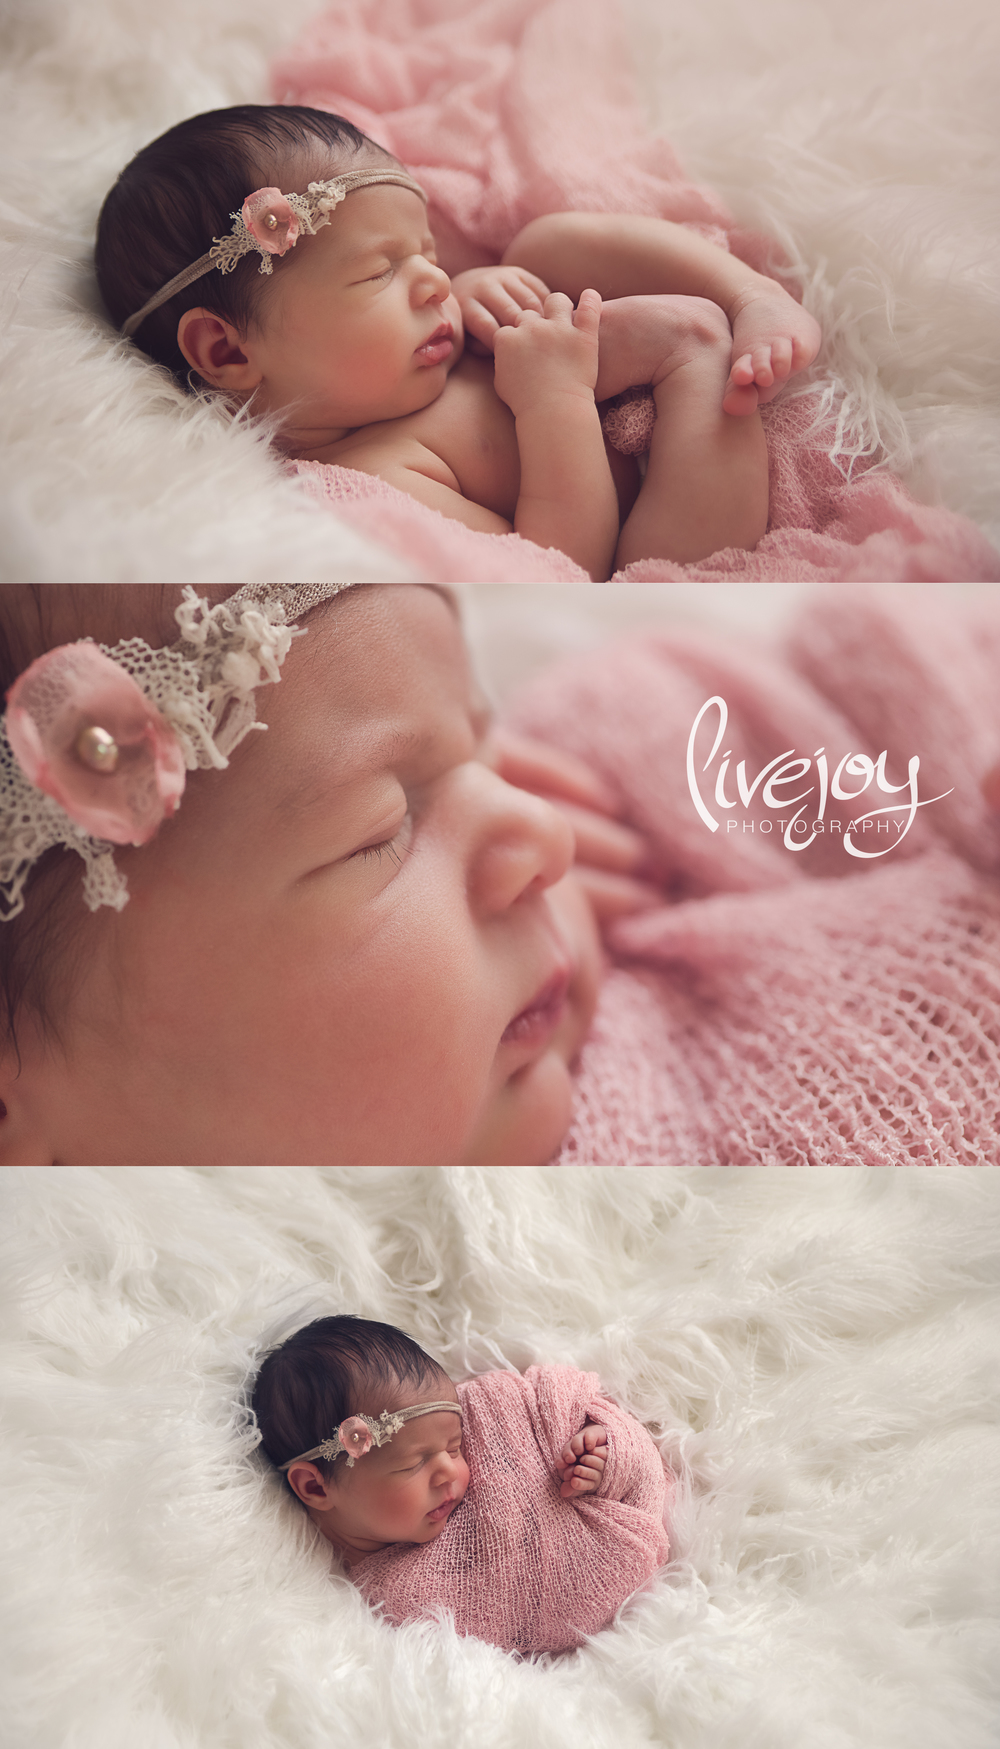 Newborn Photography - LiveJoy Photography - Oregon